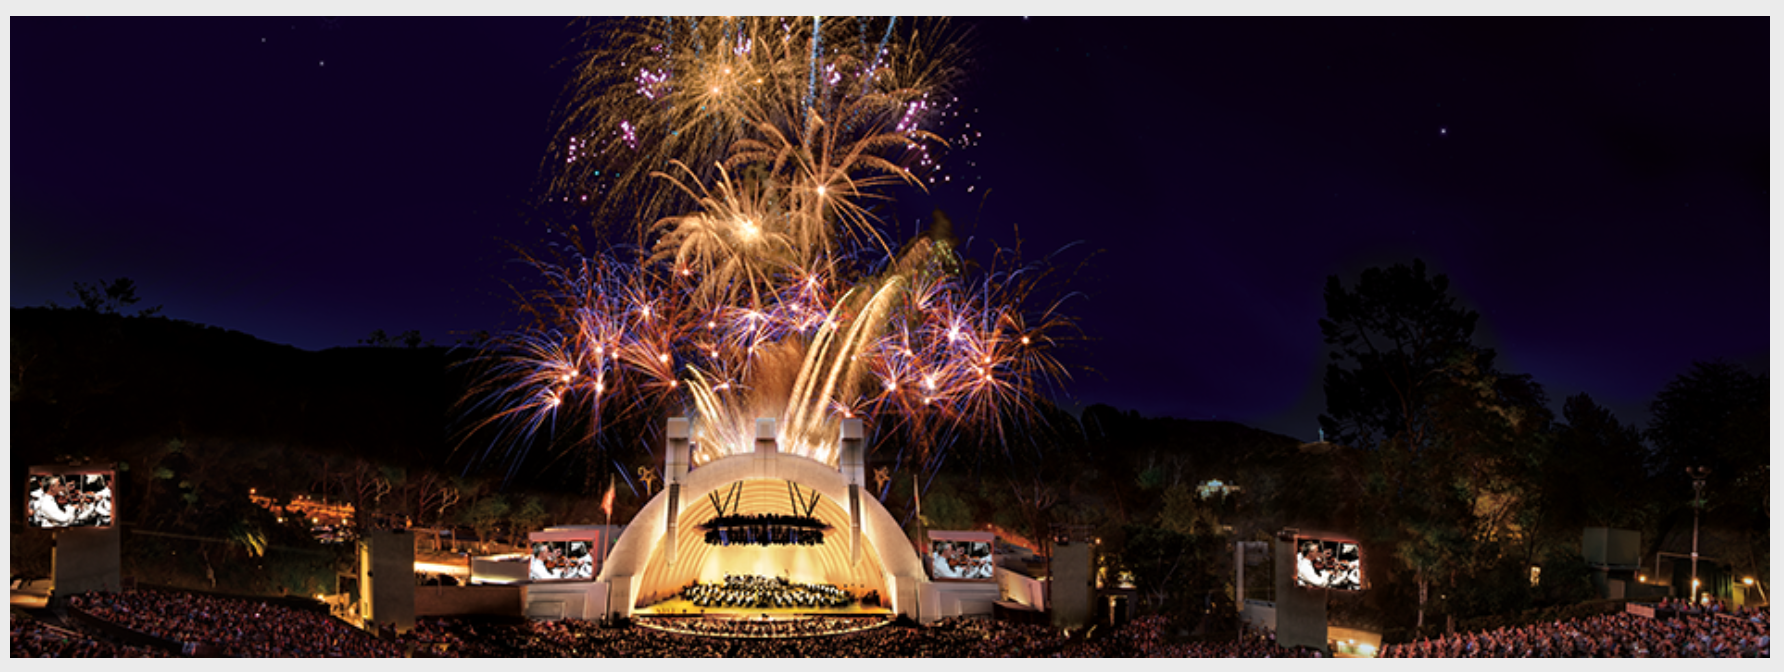 A firework finale at the The Hollywood Bowl.